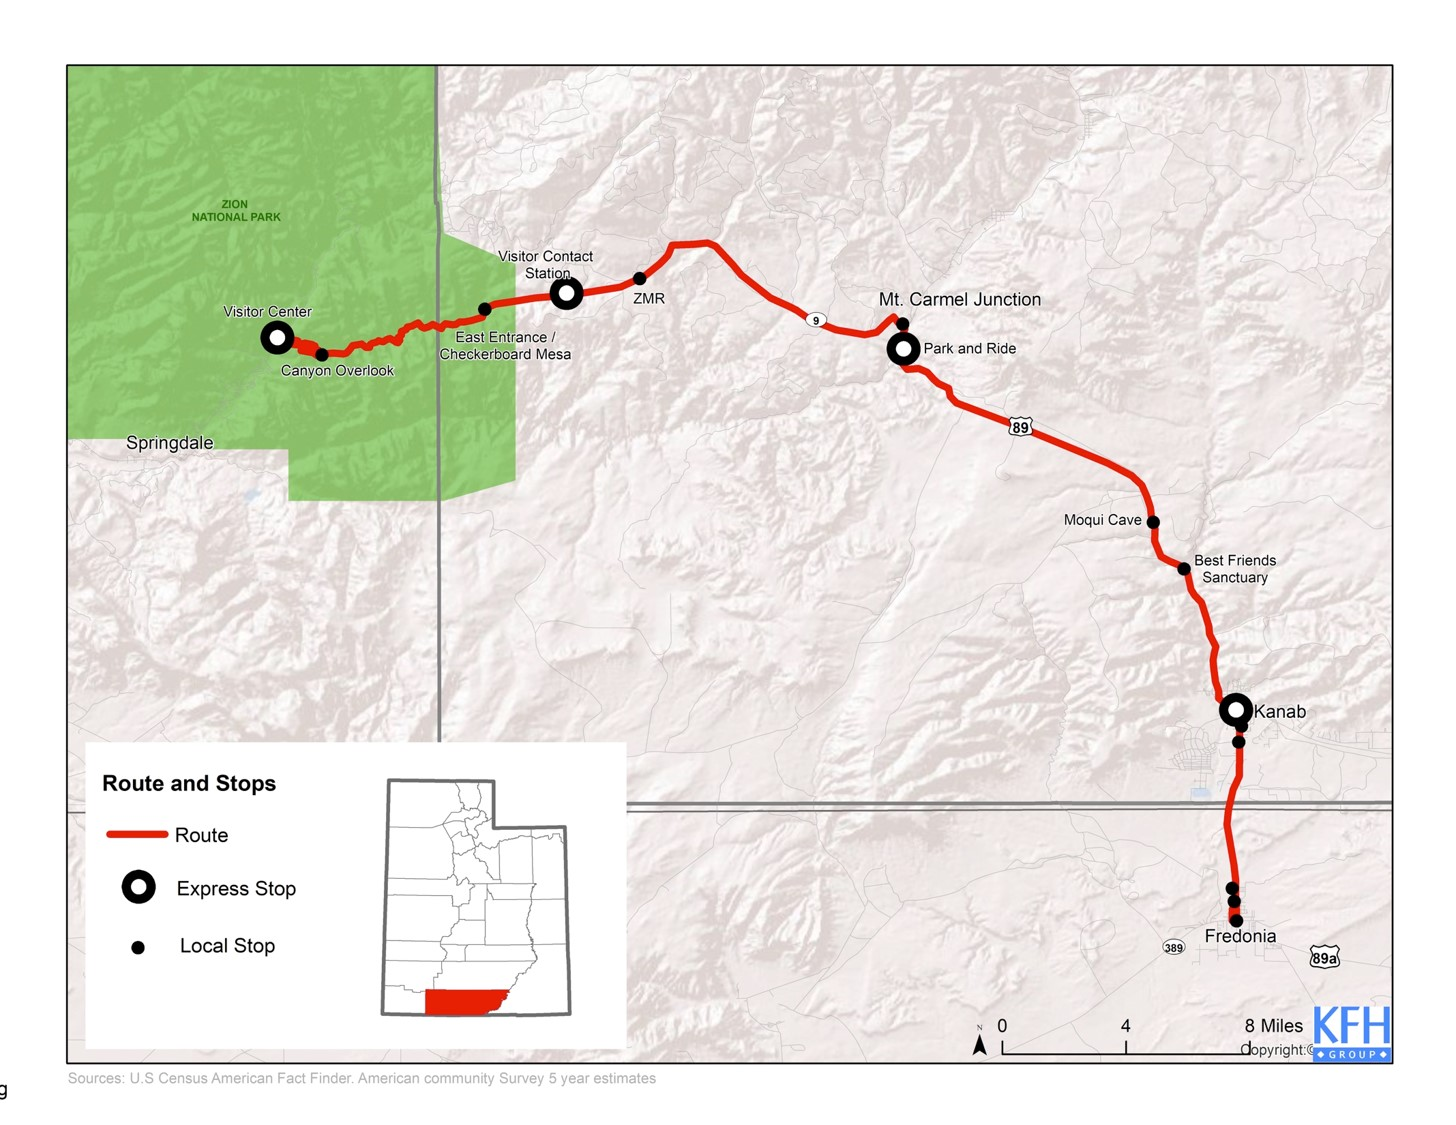 Gateway community' planned for east entrance to Zion National Park on united states route map, purple line route map, chicago route map, mt whitney route map, great lakes route map,